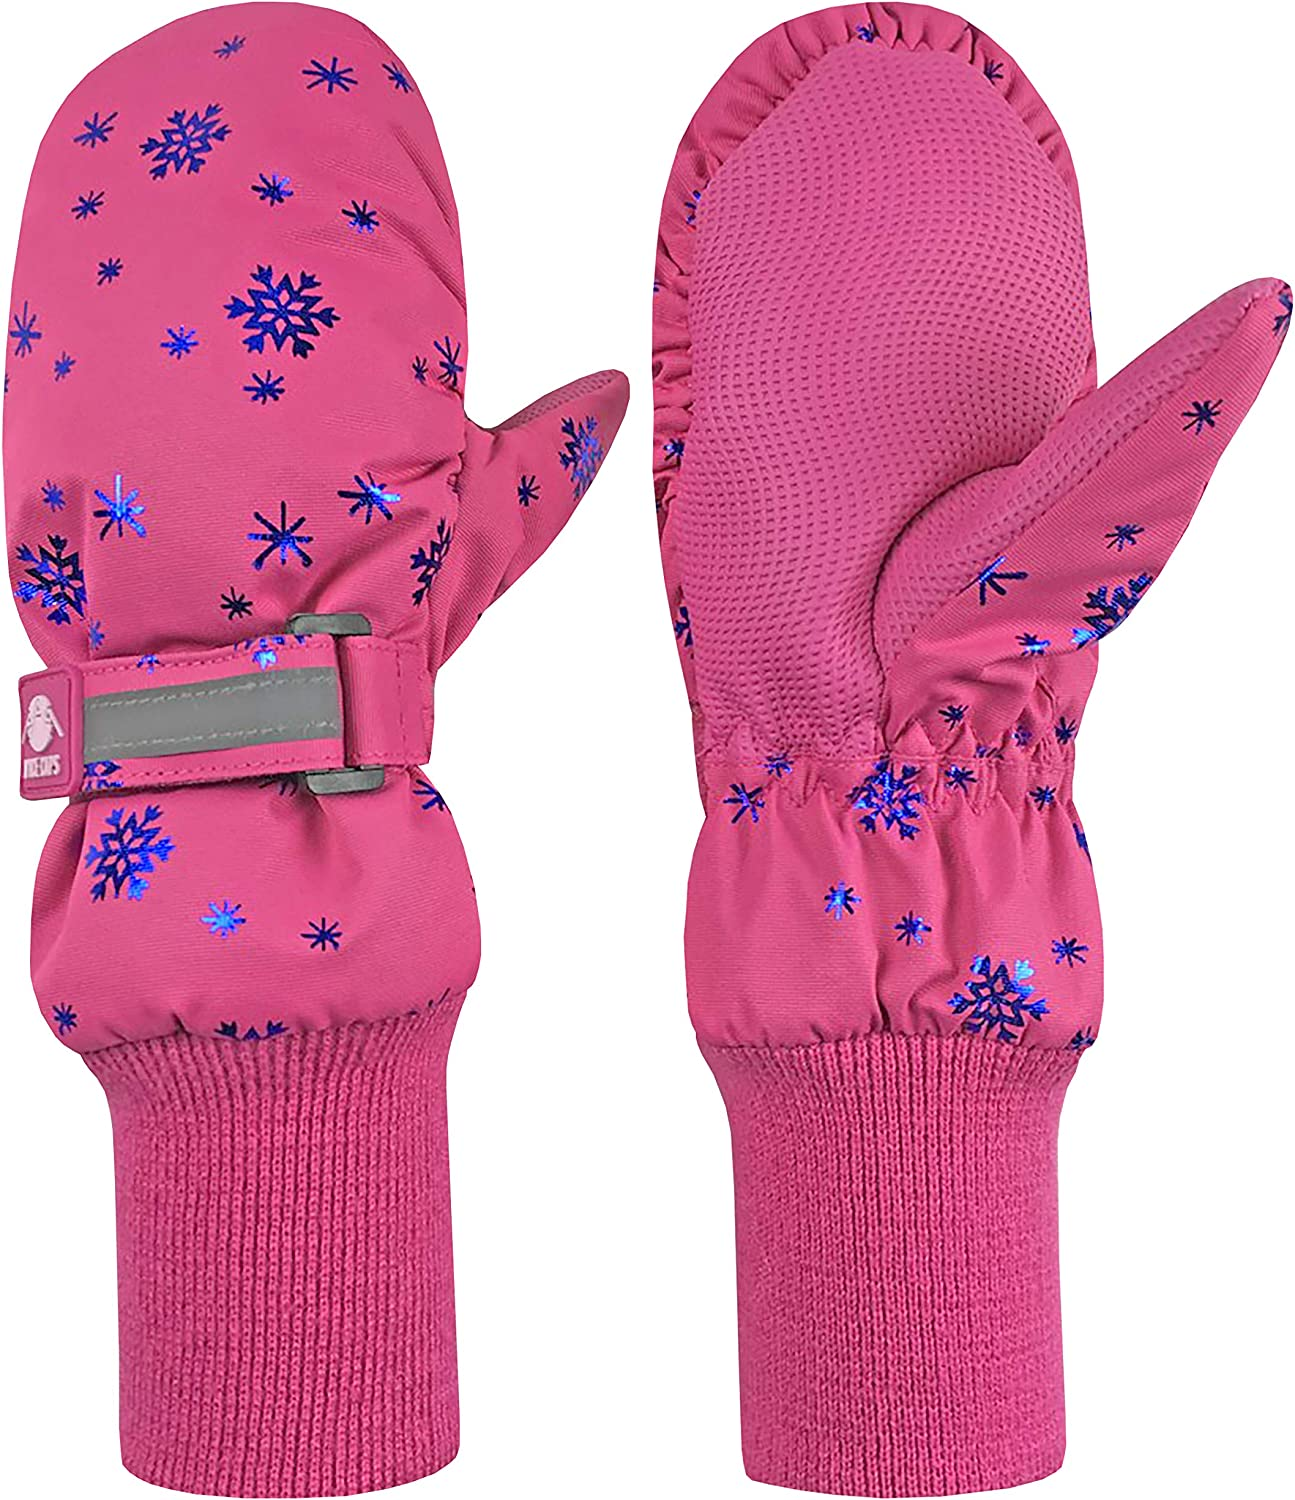 N'Ice Caps Kids Safety Reflector Thinsulate Waterproof Winter Snow Ski Mittens